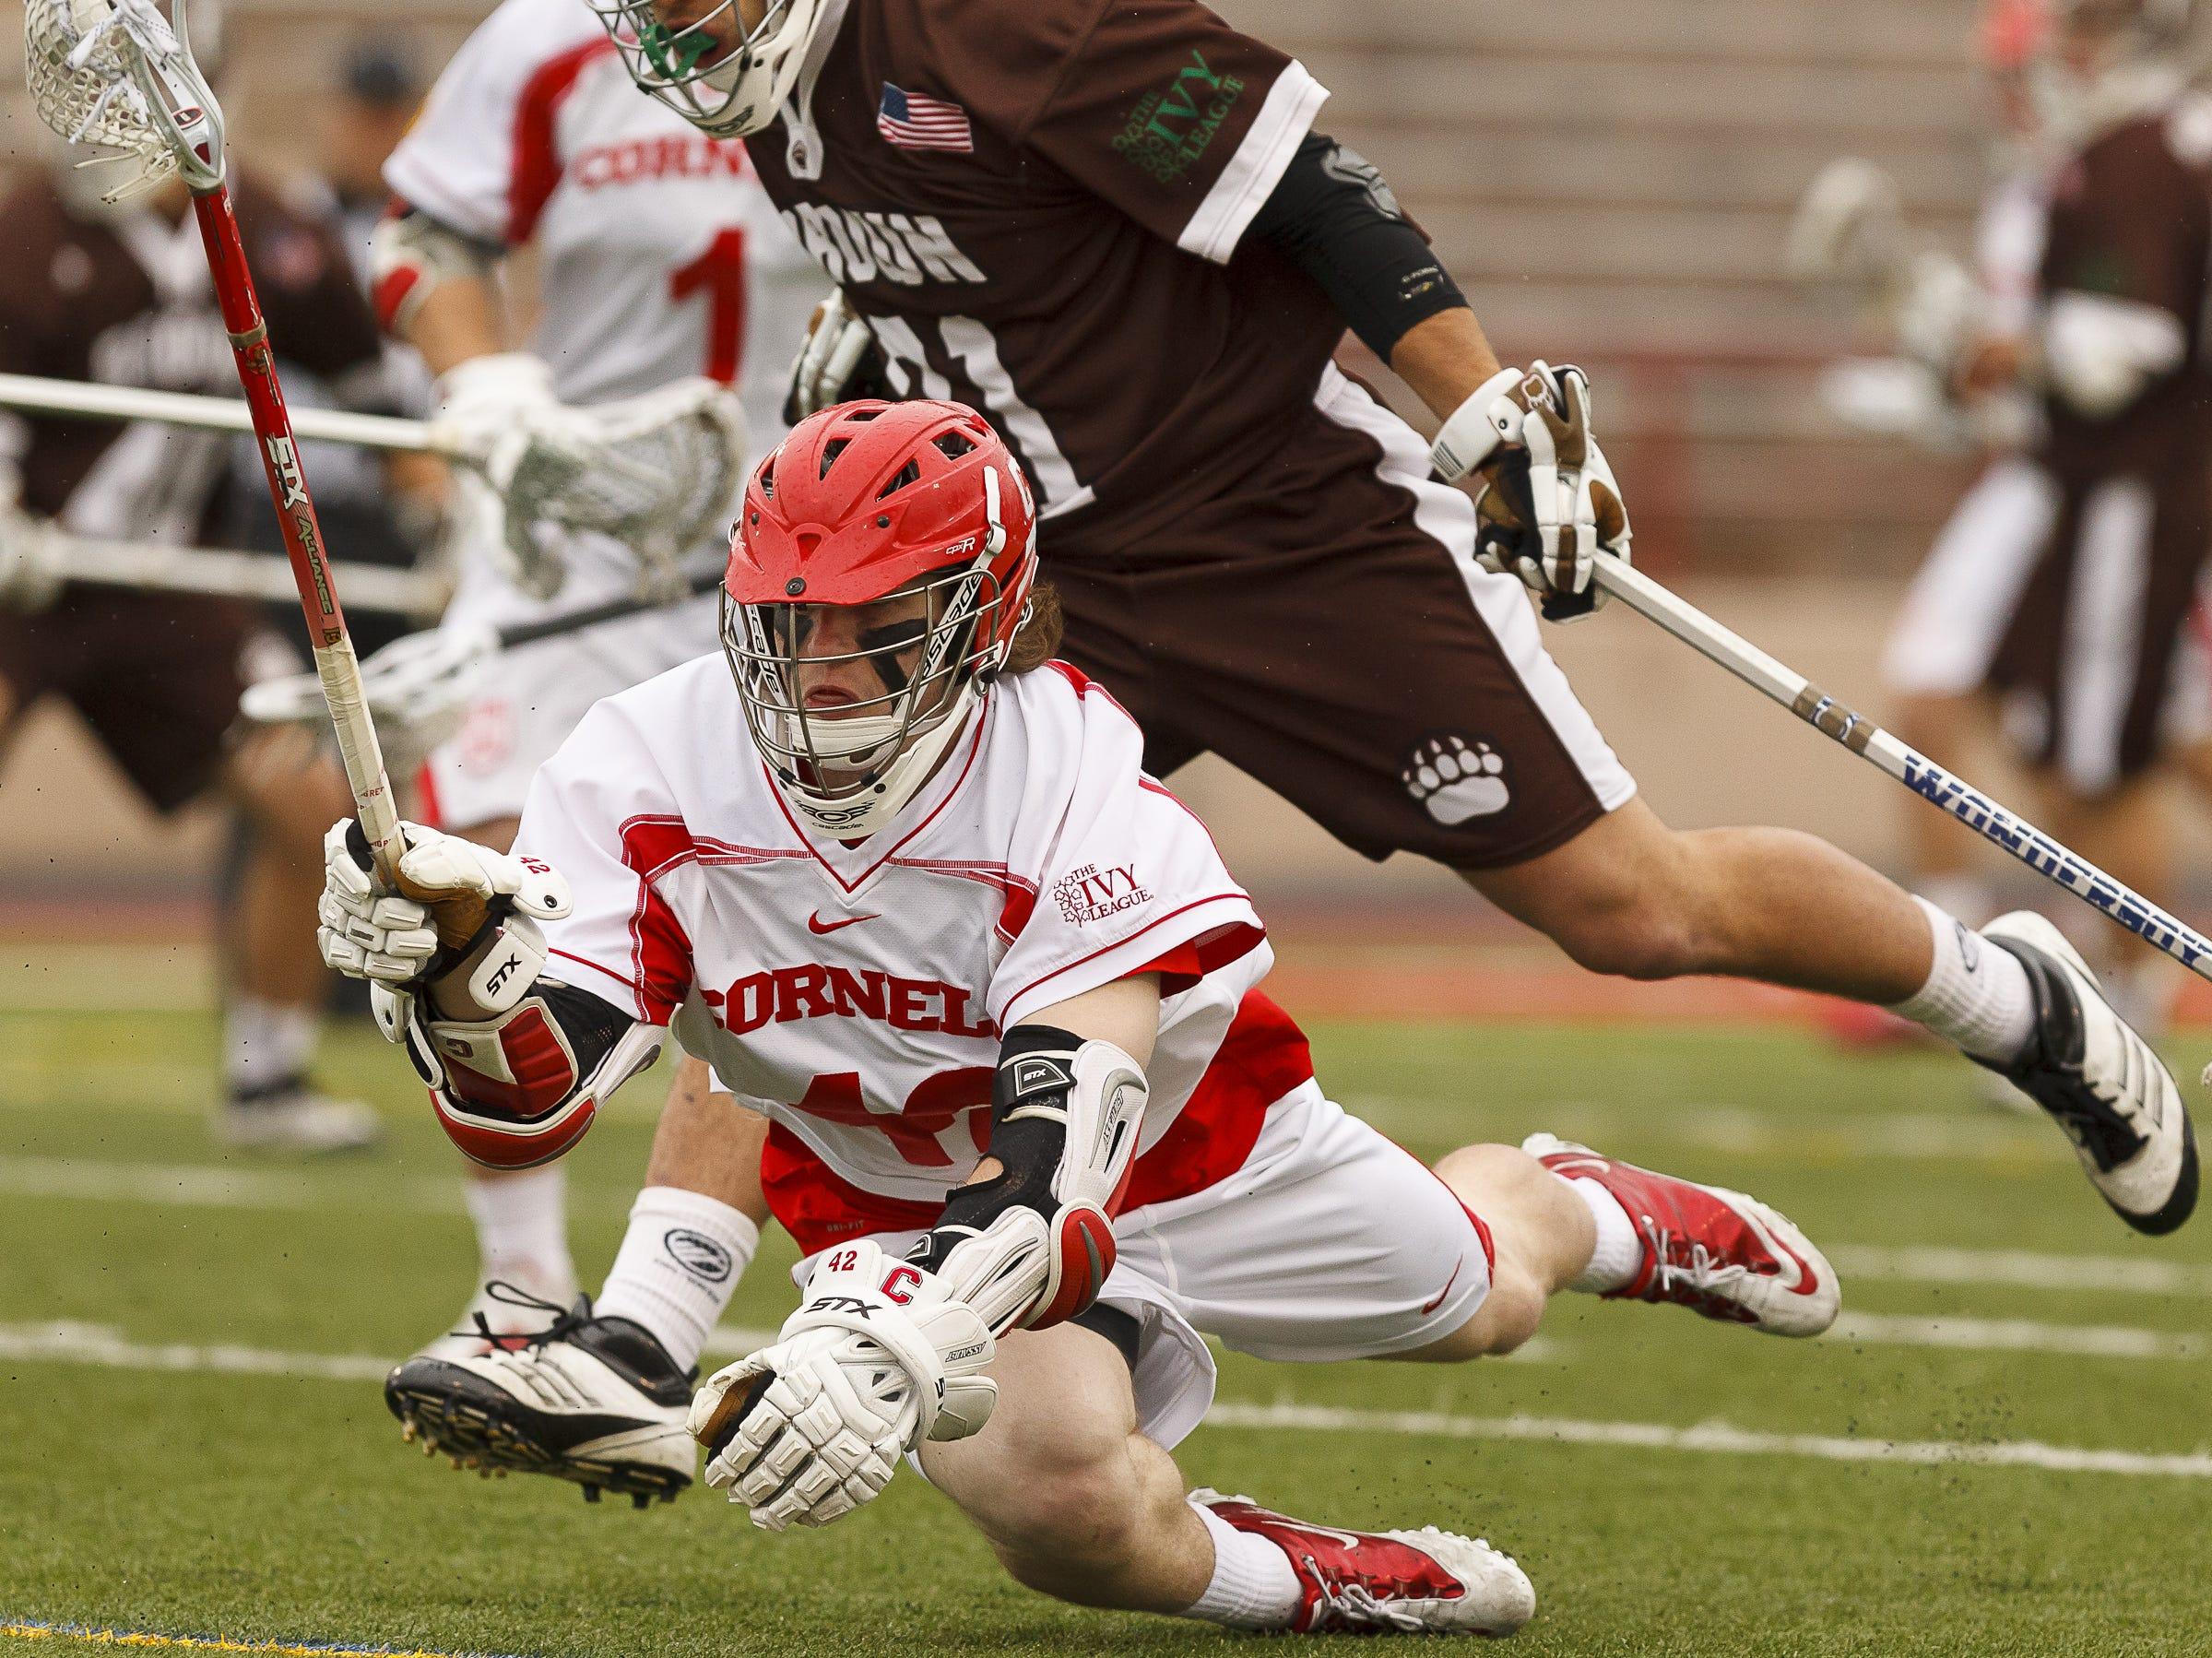 2012: Cornell junior Connor English reaches for a ground ball Saturday in College Mens Lacrosse. The two teams faced each other at Schoellkopf  field. Brown defeated Cornell with 4.7 seconds remaining in the game. The final score was Cornell 9 and Brown 10.